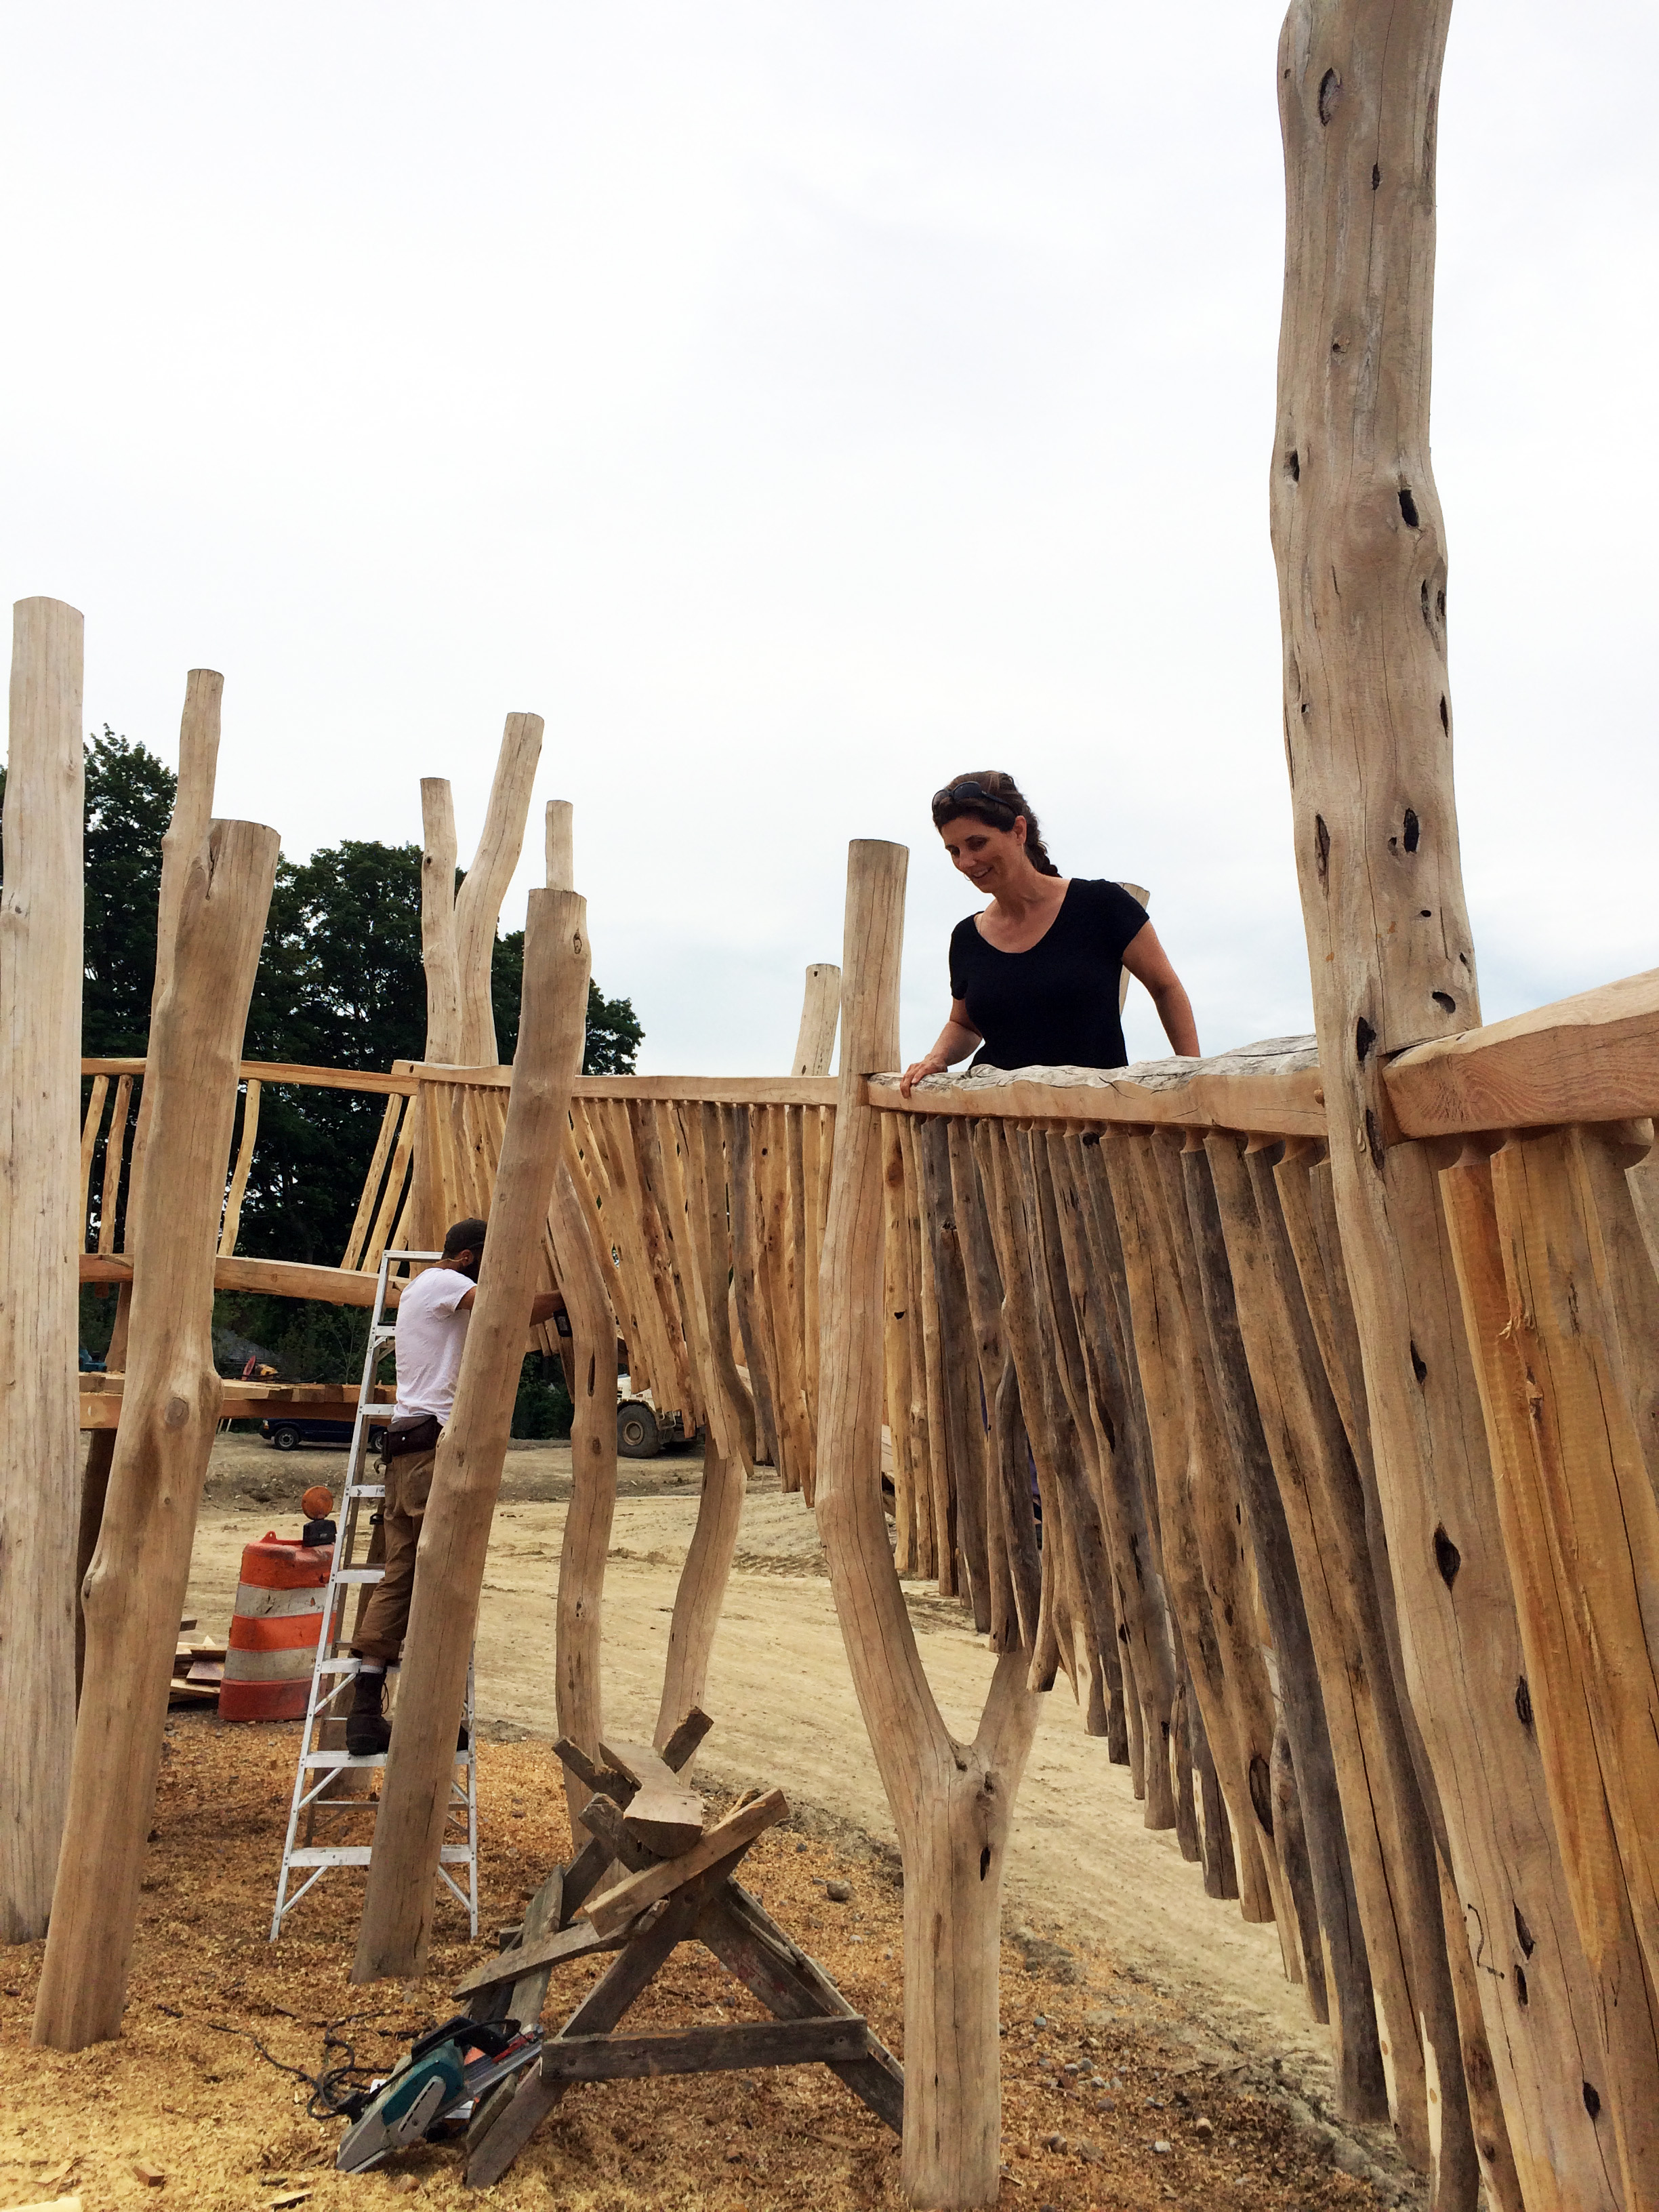 Mitch Ryerson's play structure after the balustrade is installed.